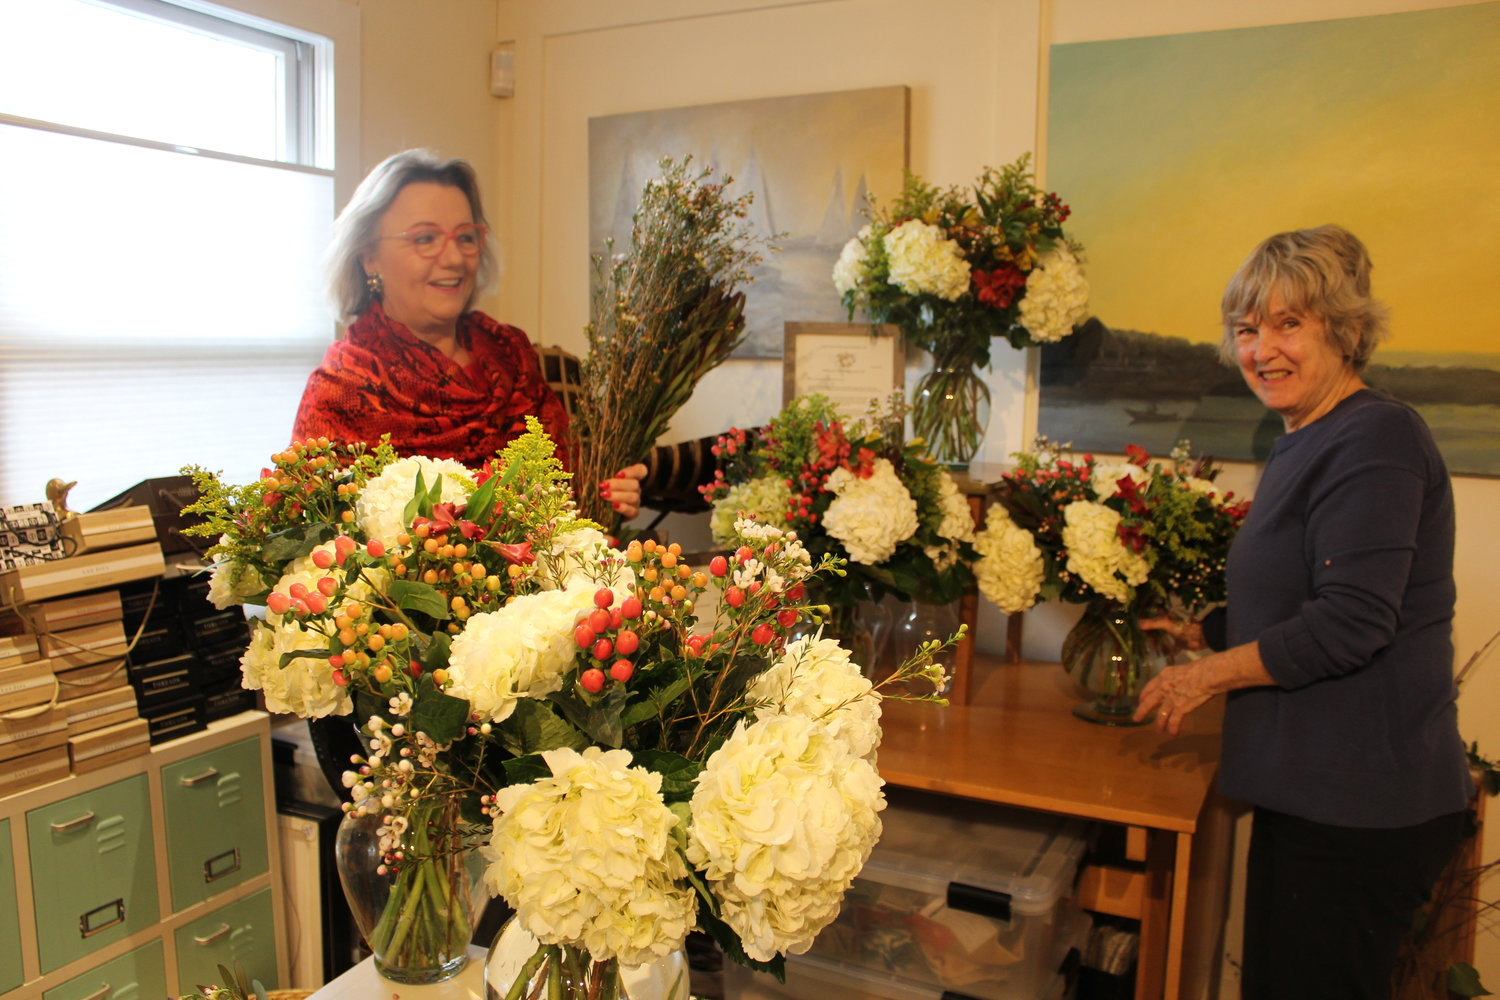 South Country Education Foundation board member and business owner Pamela Lerner shares a laugh with Bellport Garden Club civic chair Jane Tierney as they arrange flowers for teachers, a SCEF-sponsored event.